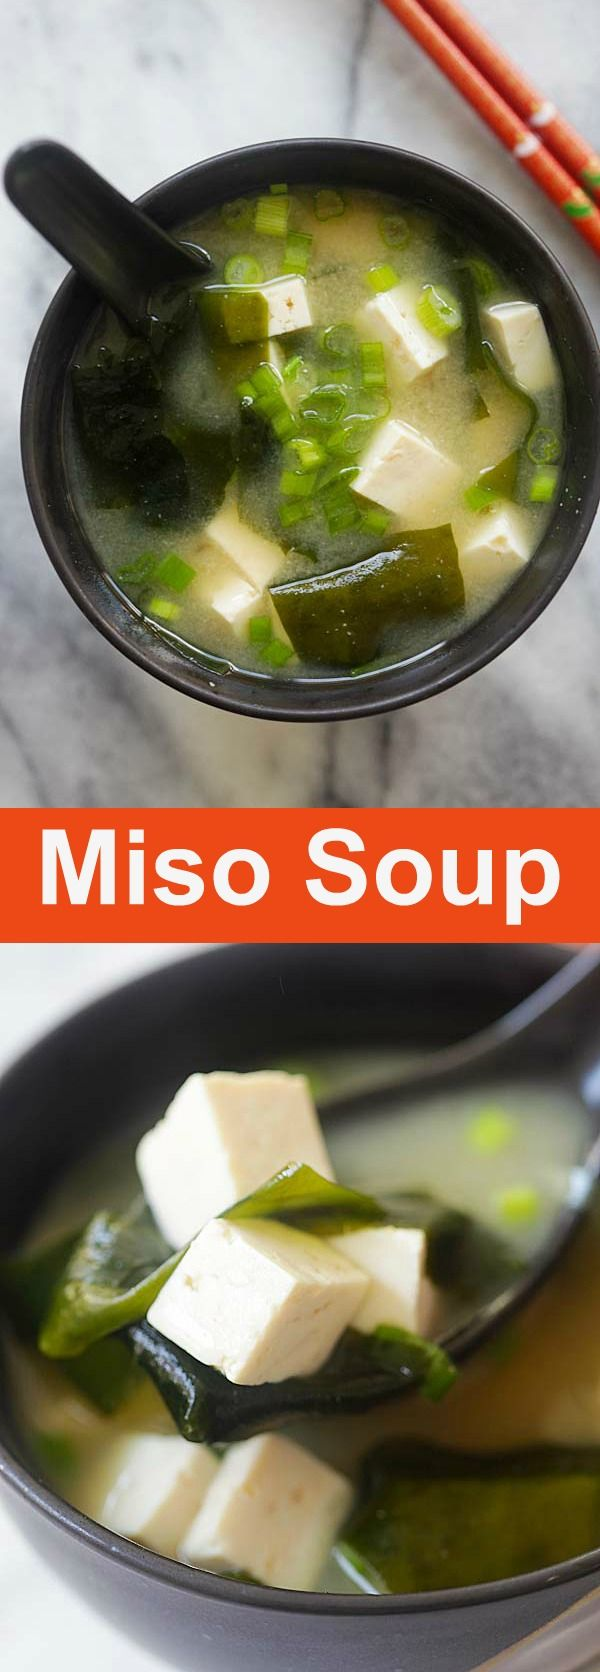 Easy Miso Soup – quick miso soup recipe with tofu and seaweed. Miso soup is hearty, delicious, healthy and takes 15 minutes to make   rasamalaysia.com